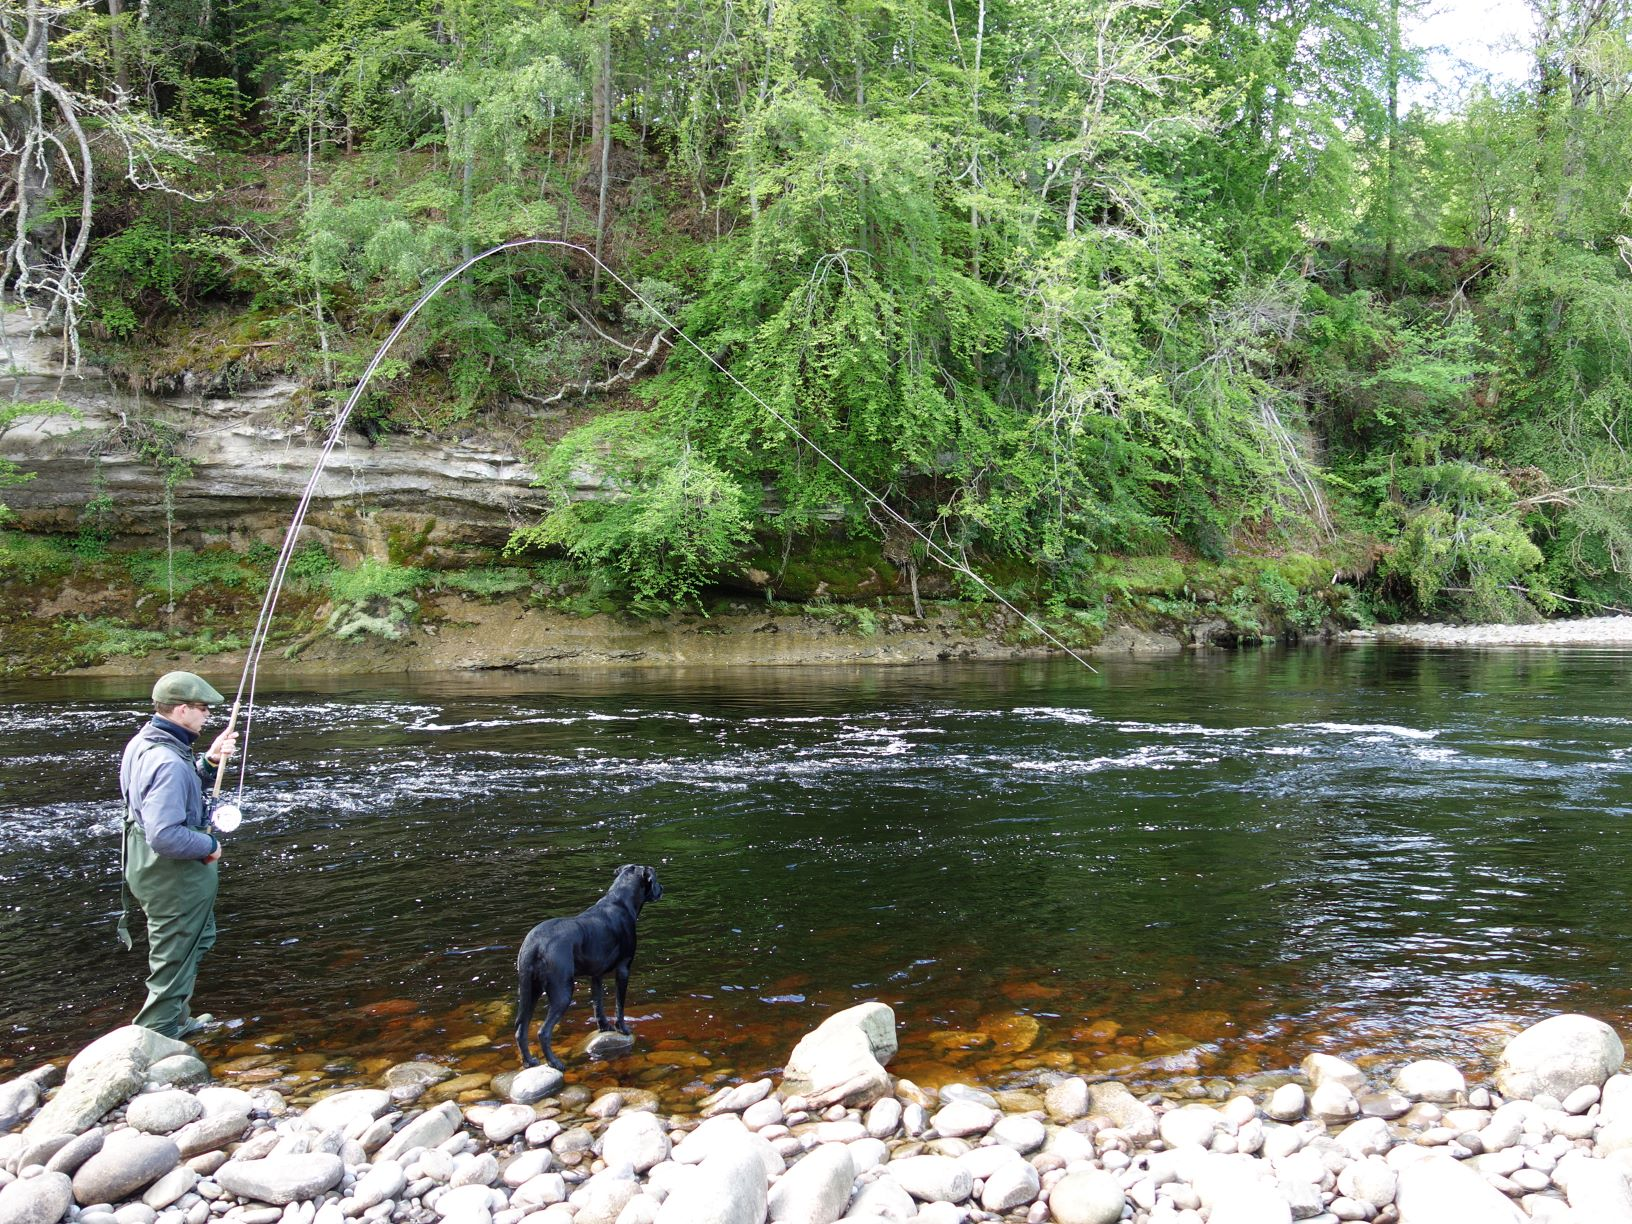 Fred Wheeler-Booth hooks and plays his second fish of the day in Soldier's Hole, Altyre Estate, River Findhorn